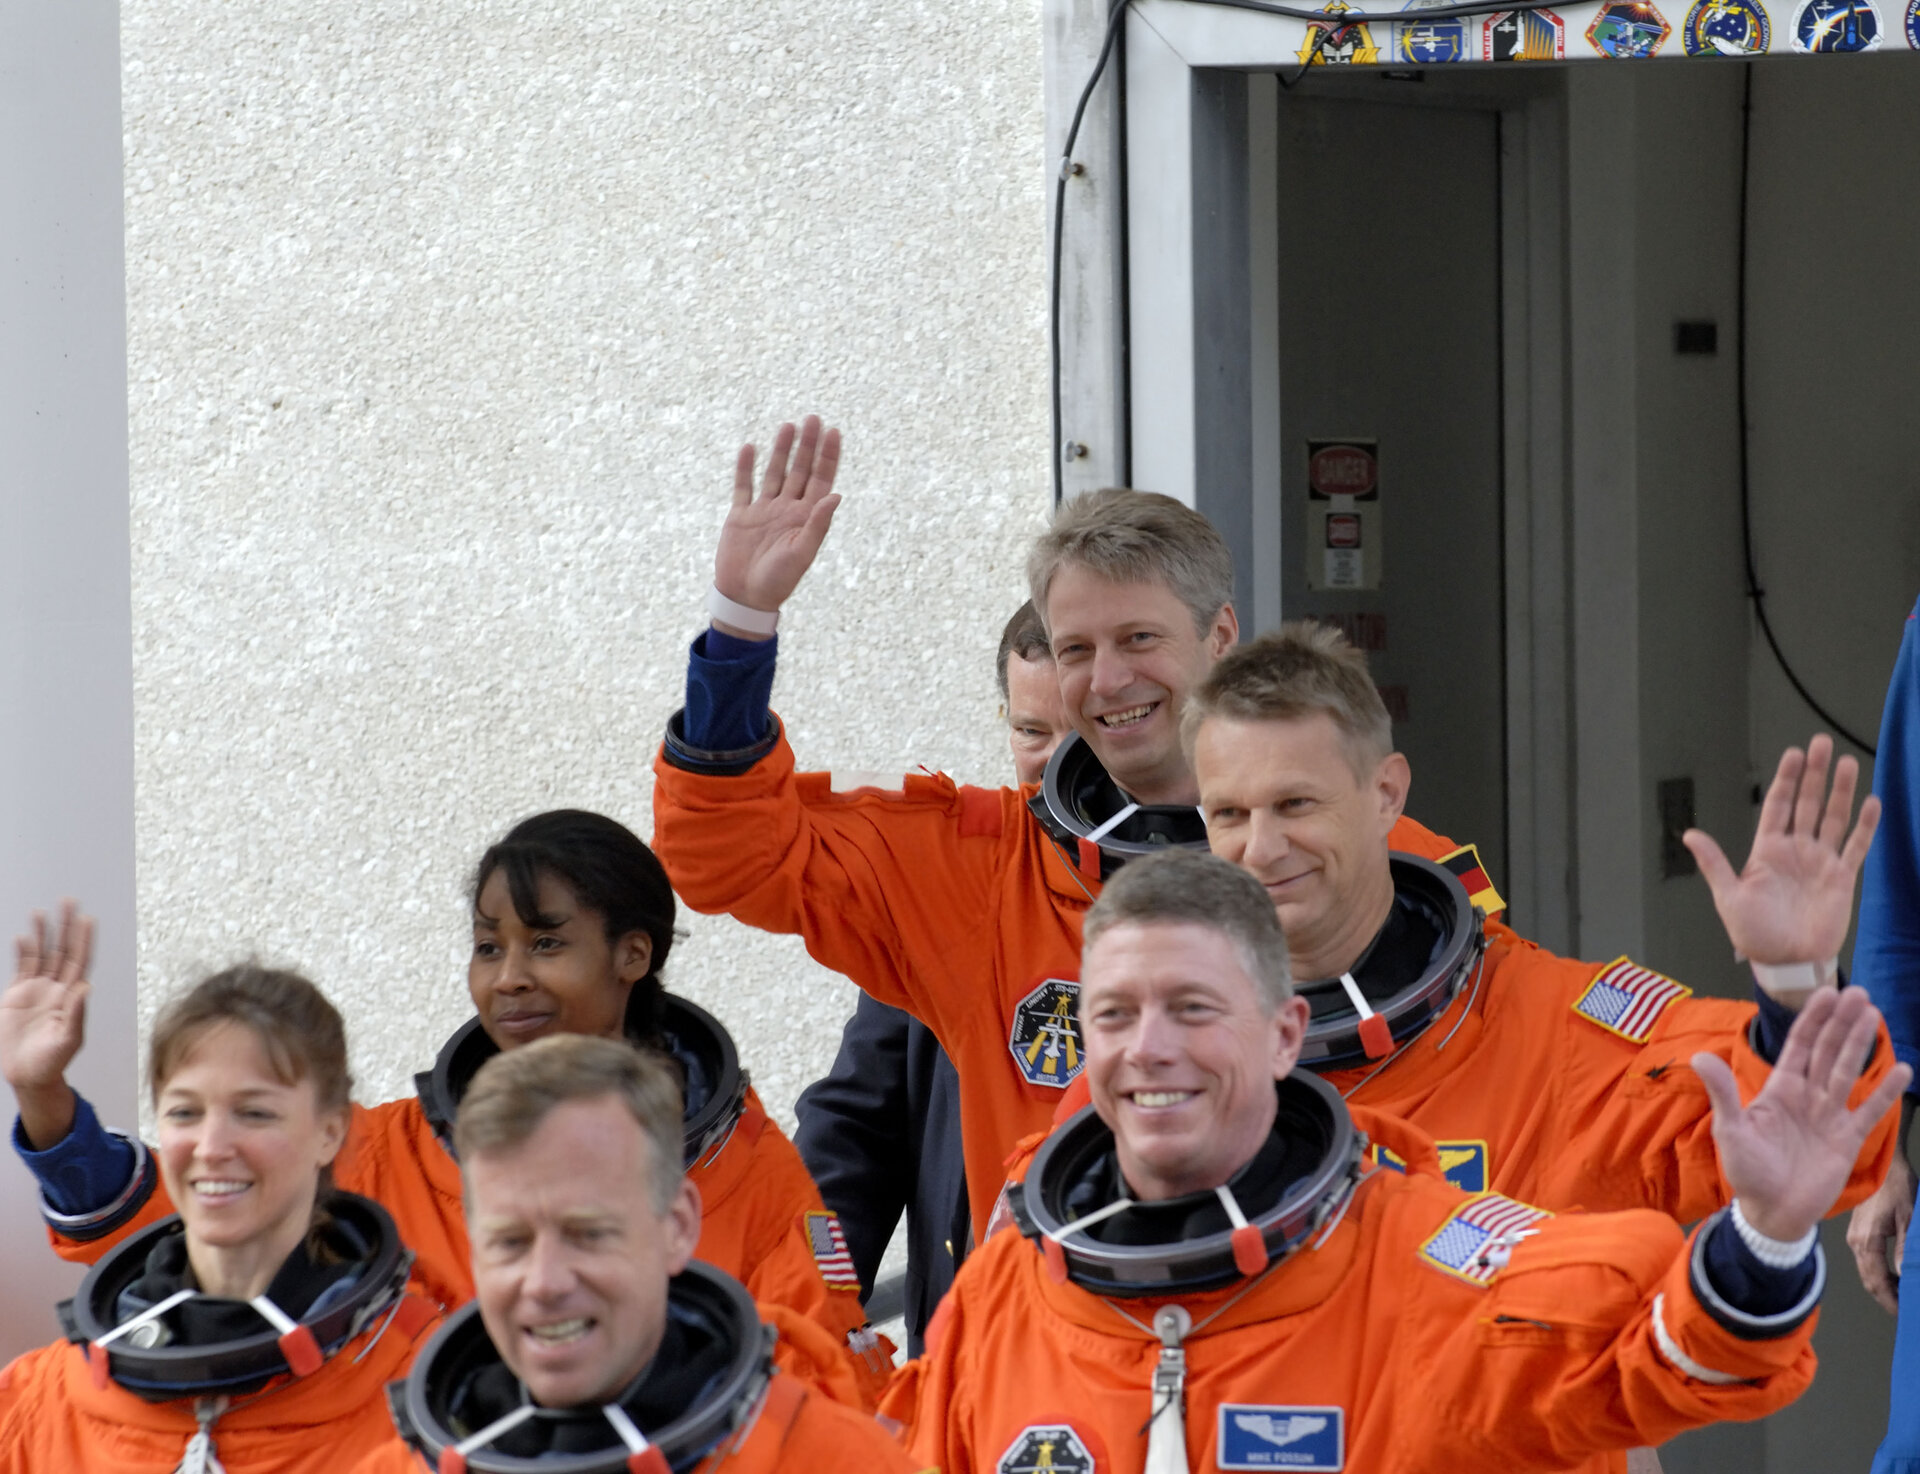 Thomas Reiter and the rest of the STS-121 crew took part in a practice countdown at KSC last week